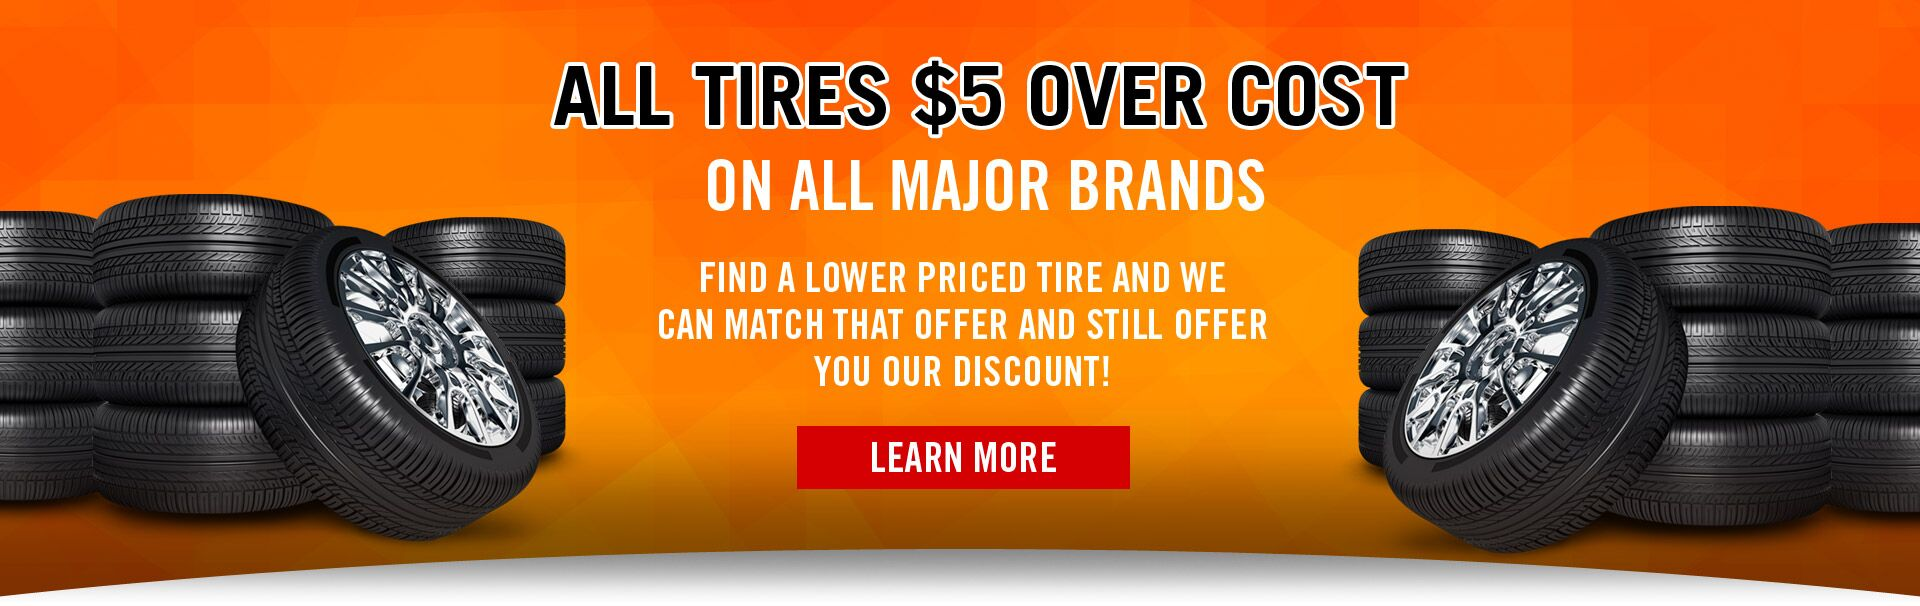 All Tires $5 Over Cost